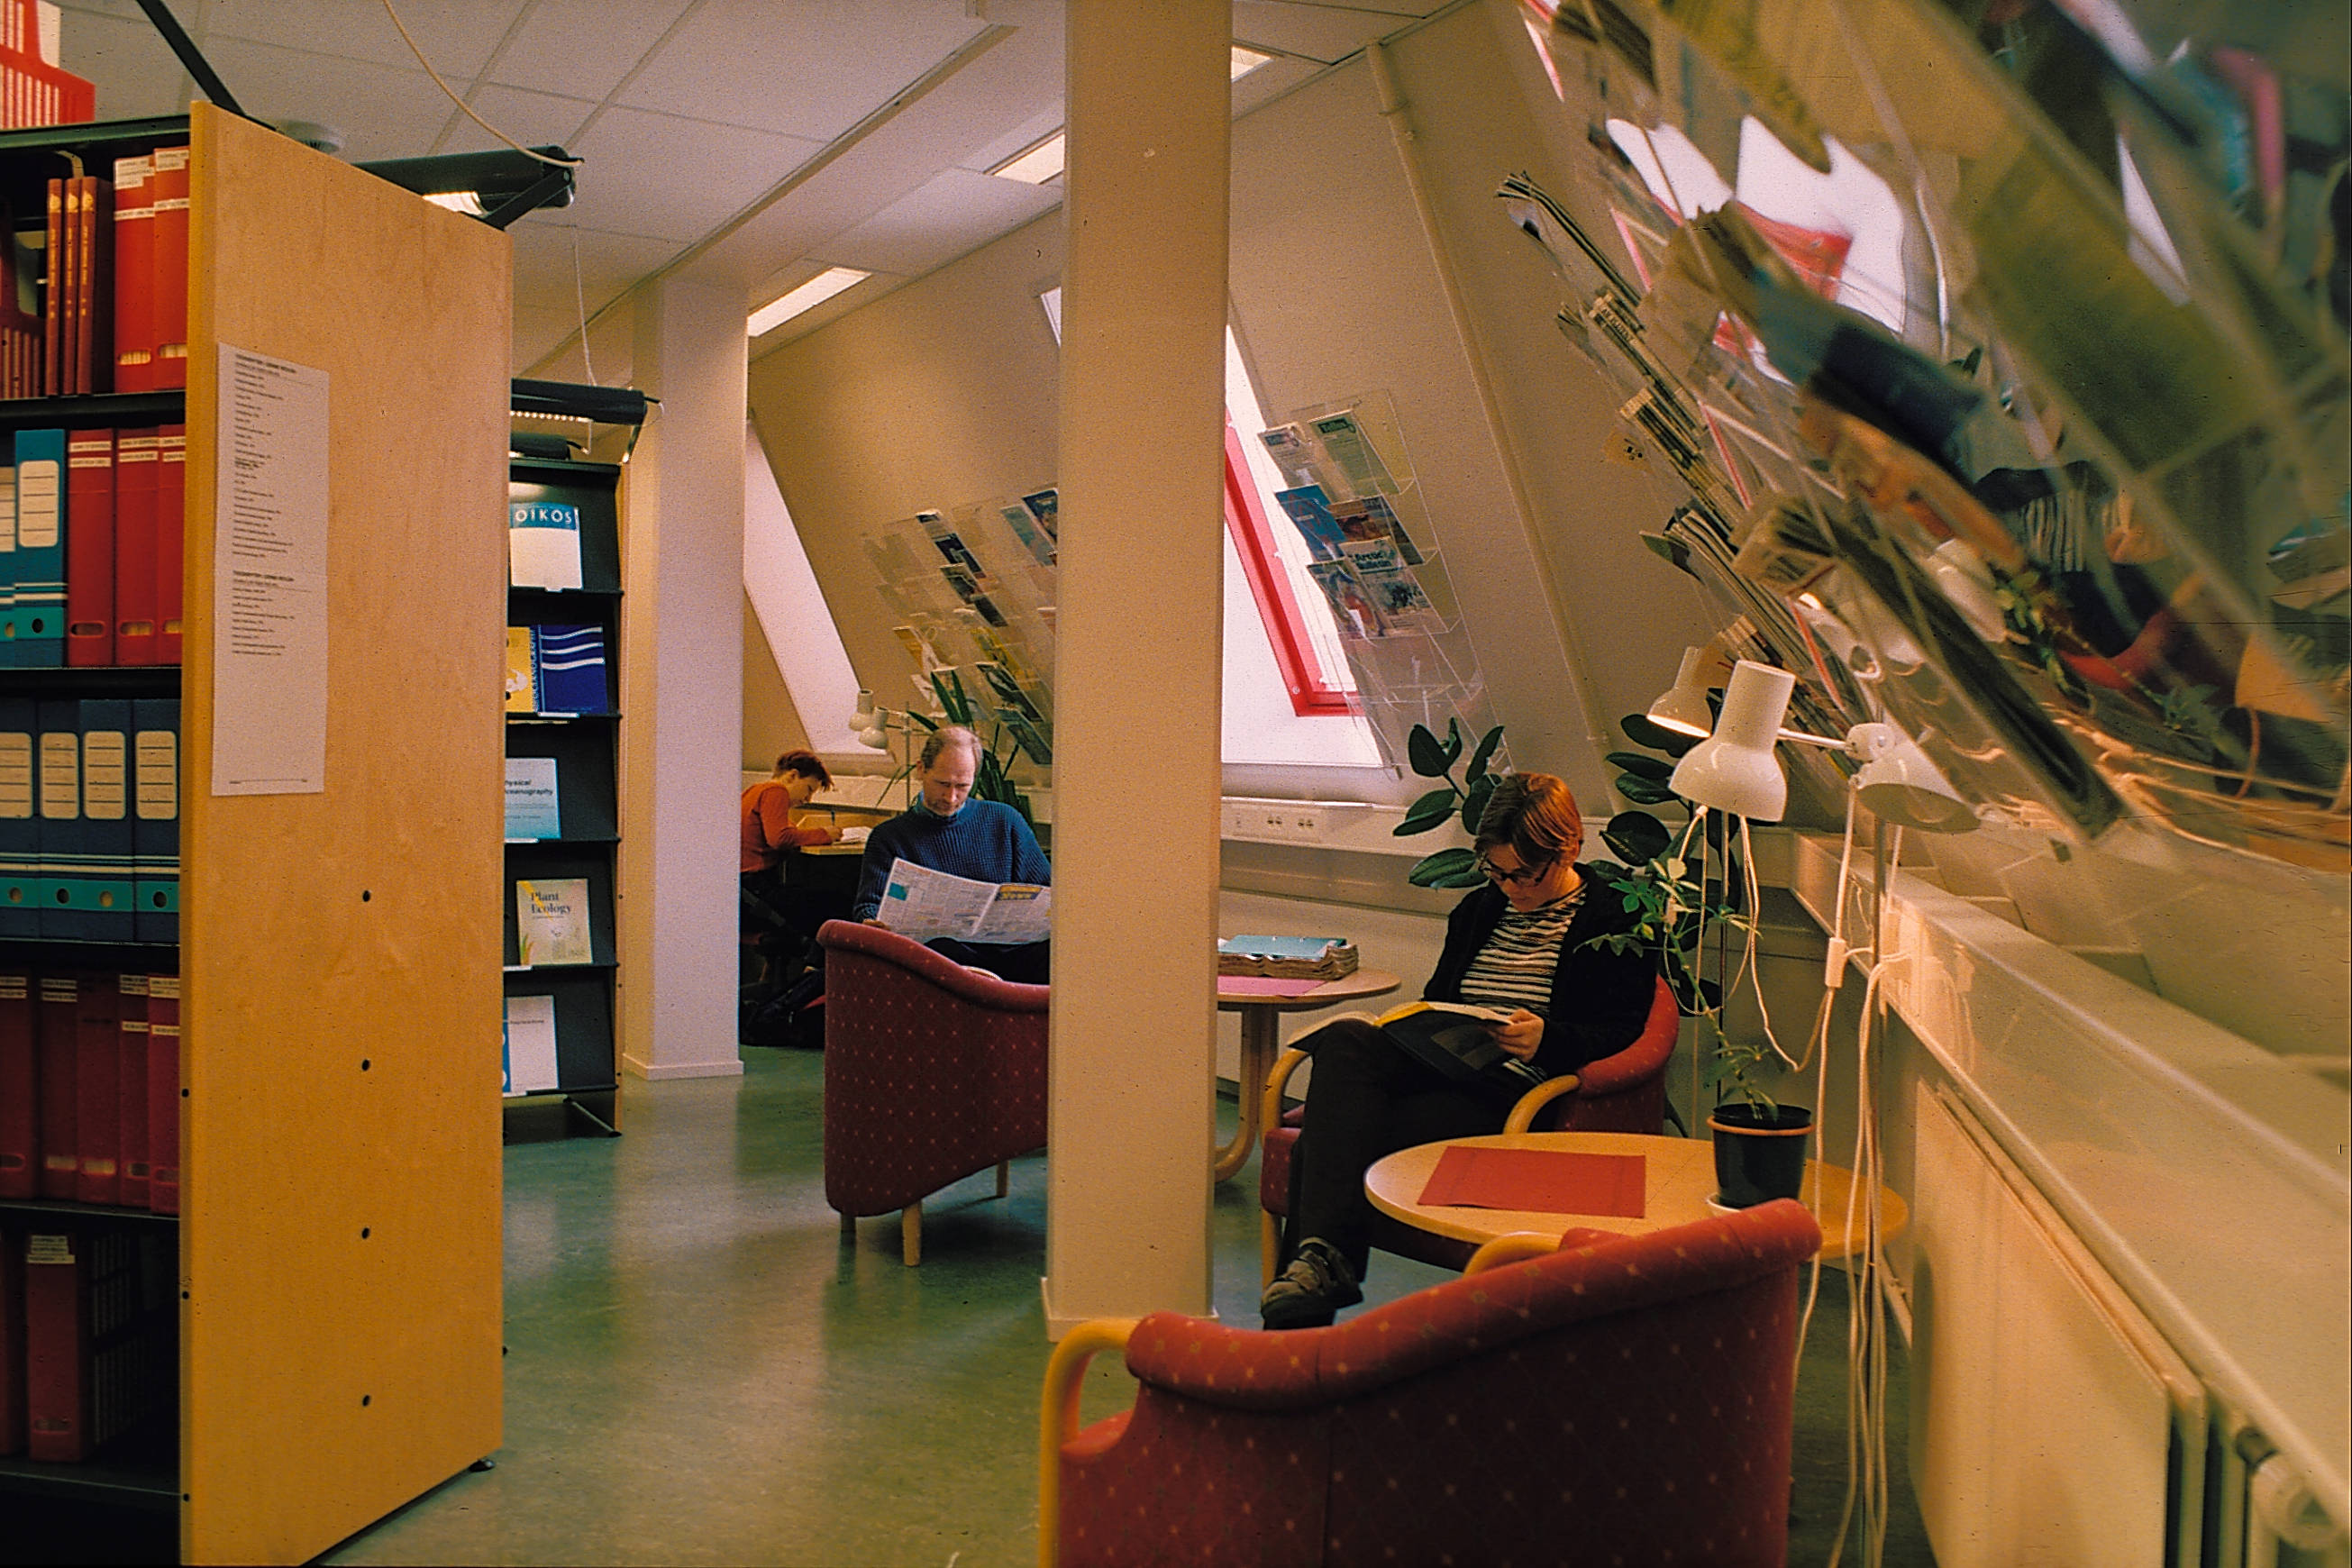 From the old UNIS library, which opened in 1995. (Photo: Tor Brekke).